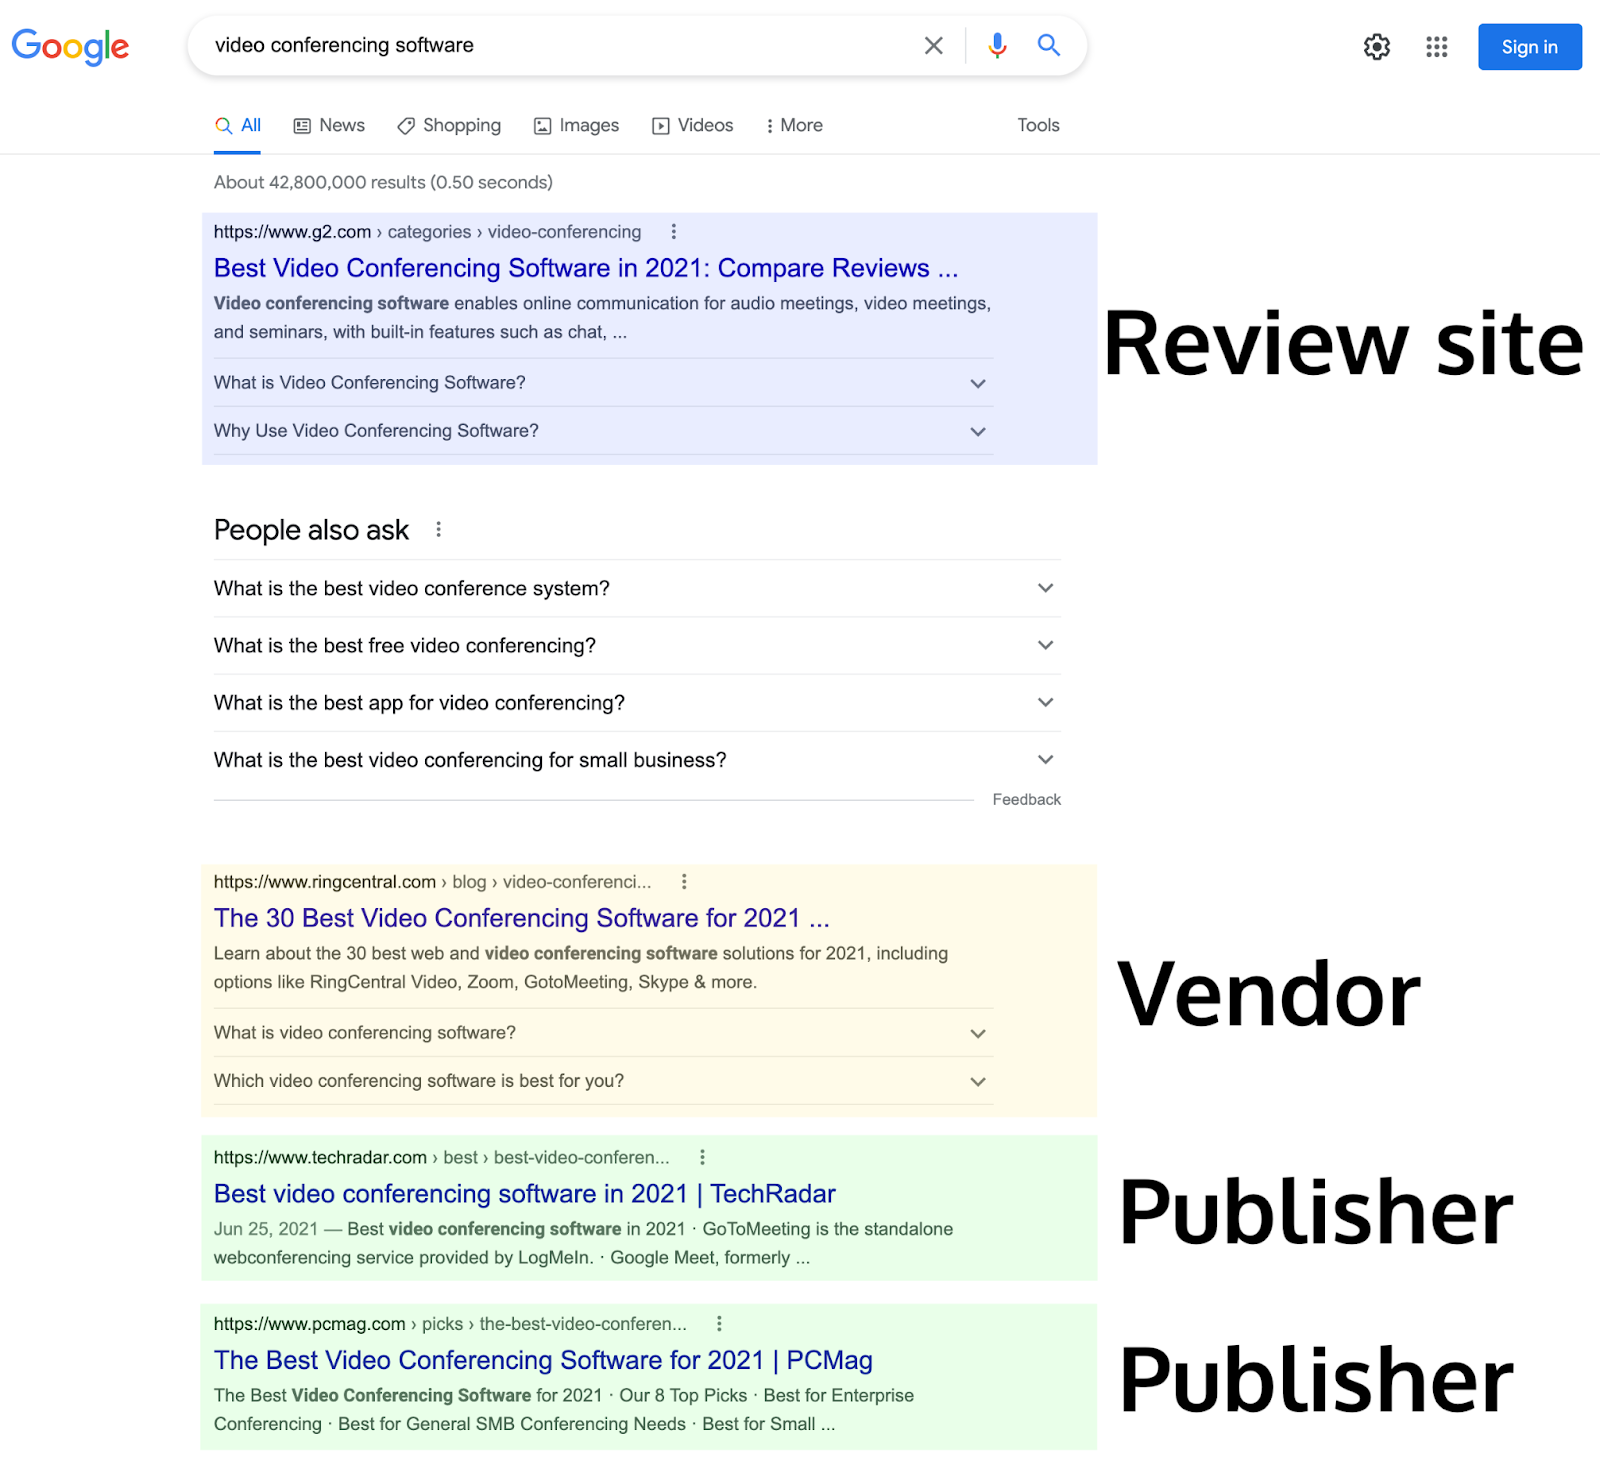 Search results pages show different types of sites based on what users expect